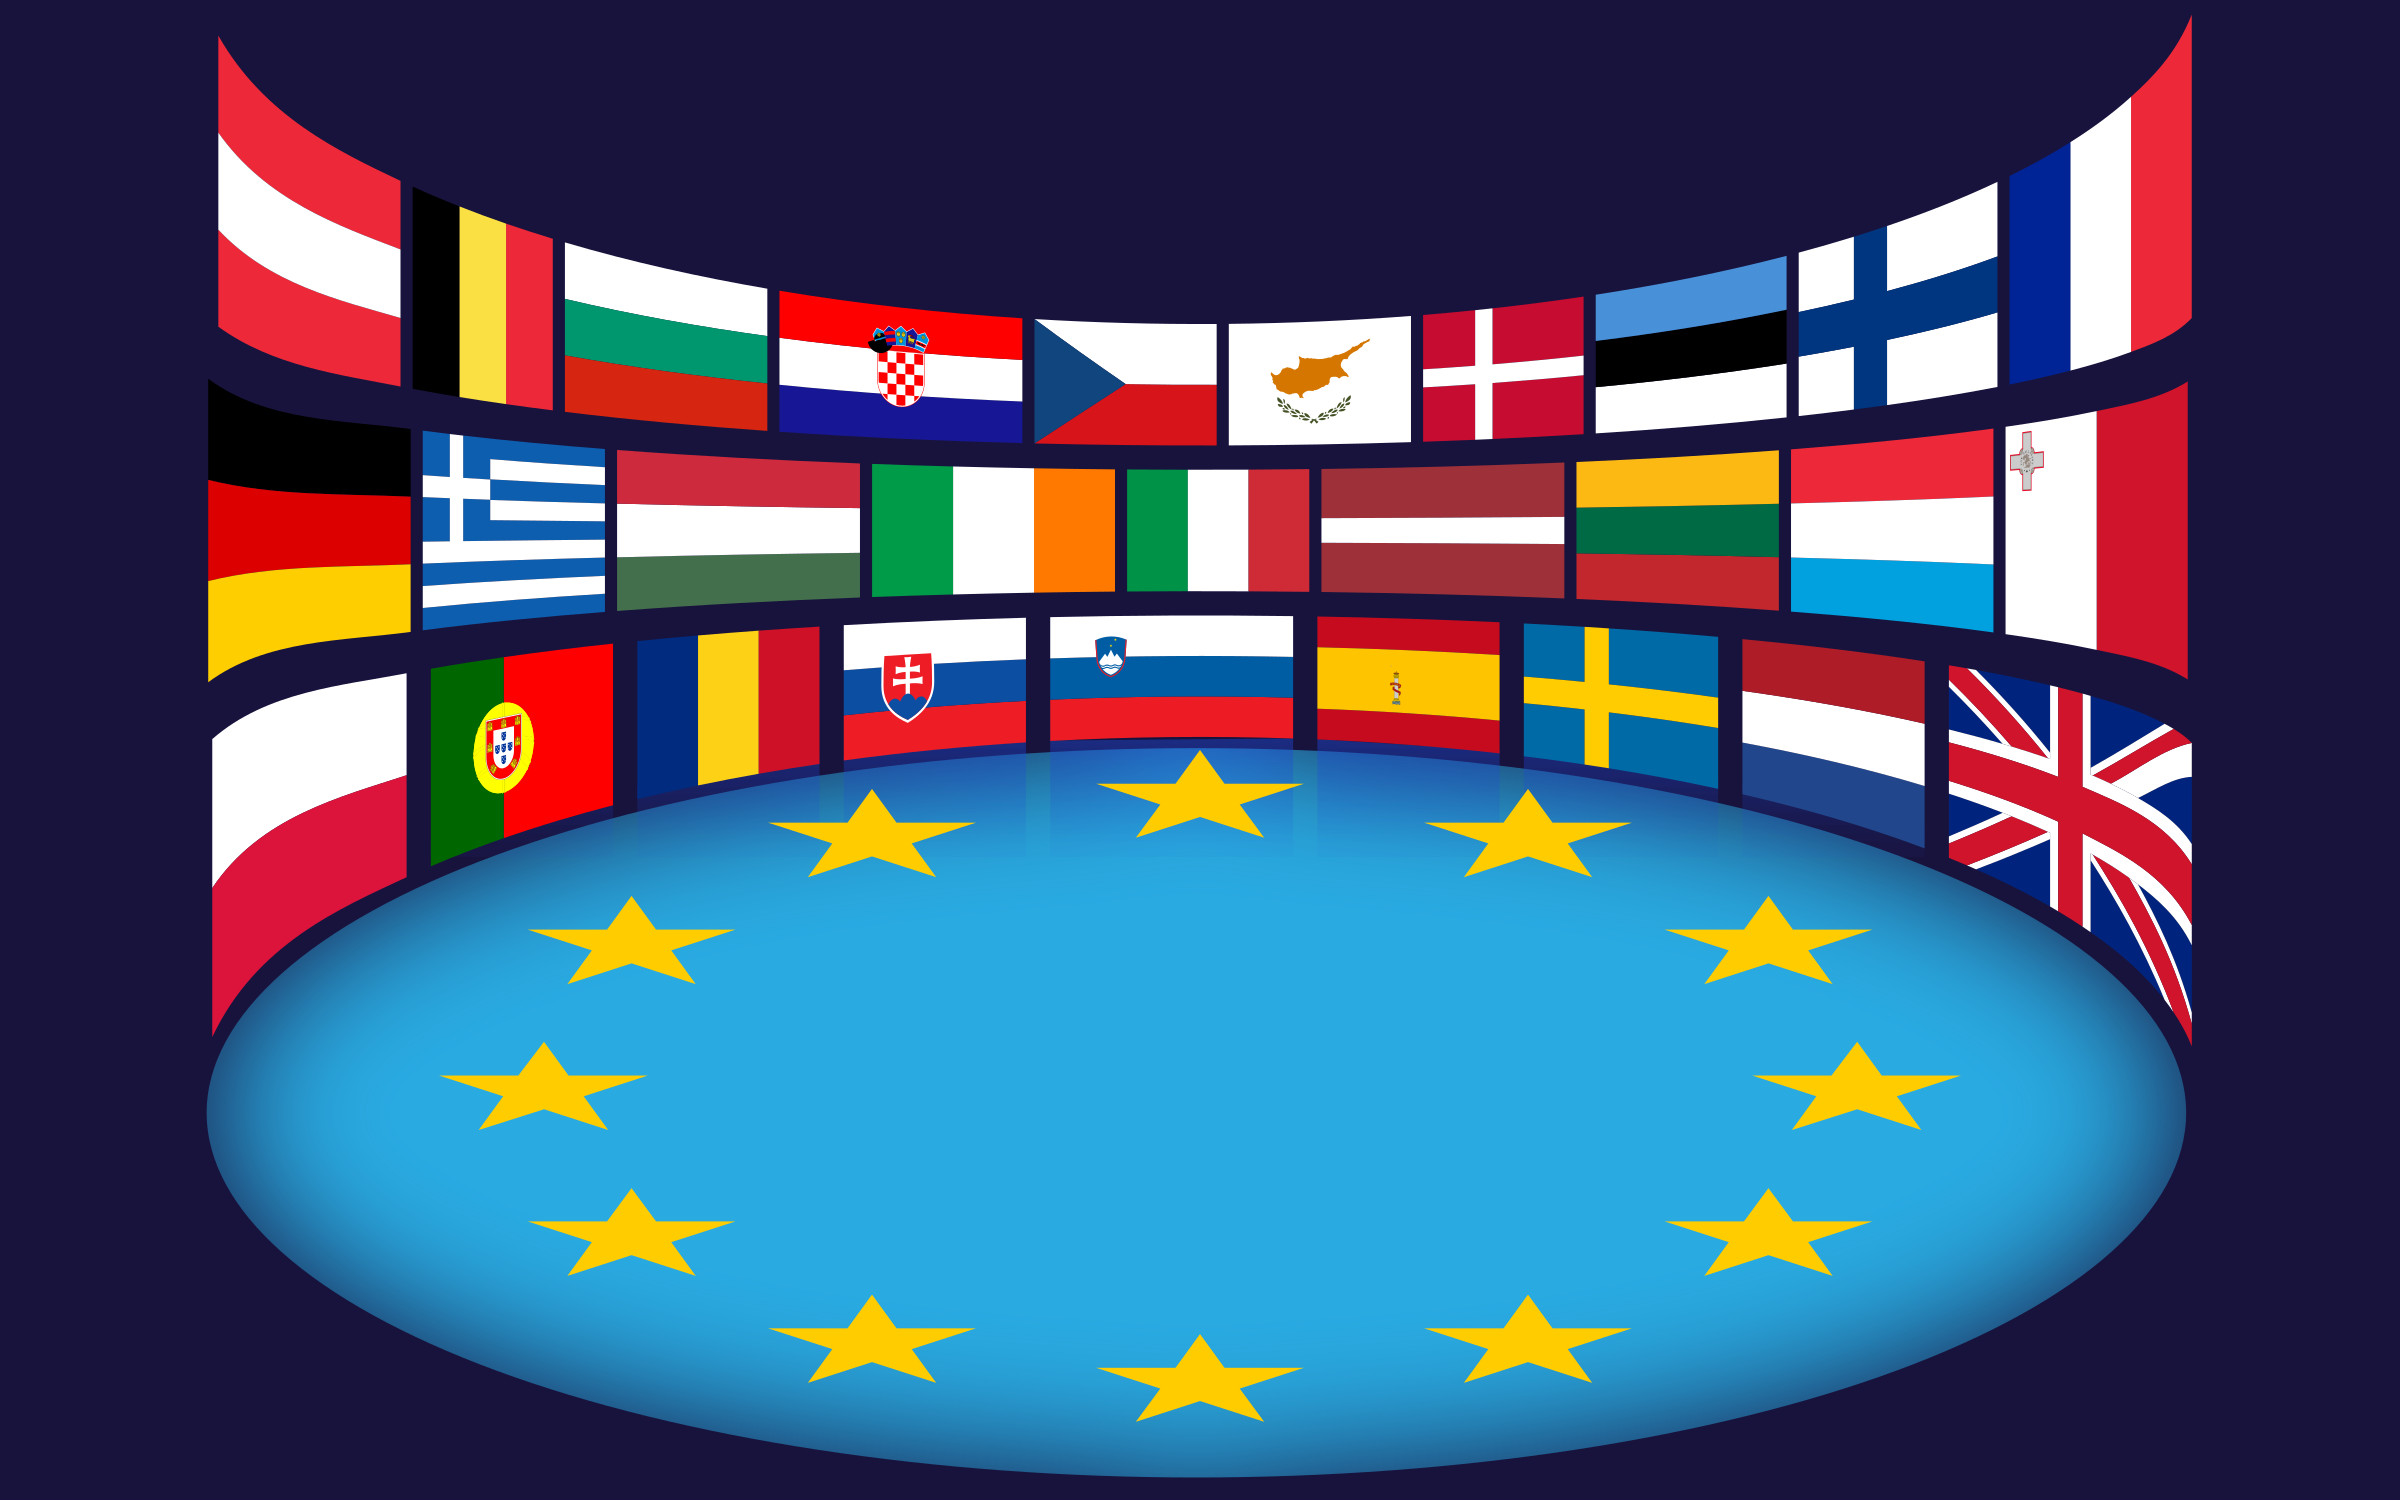 European Union 2 by GDJ